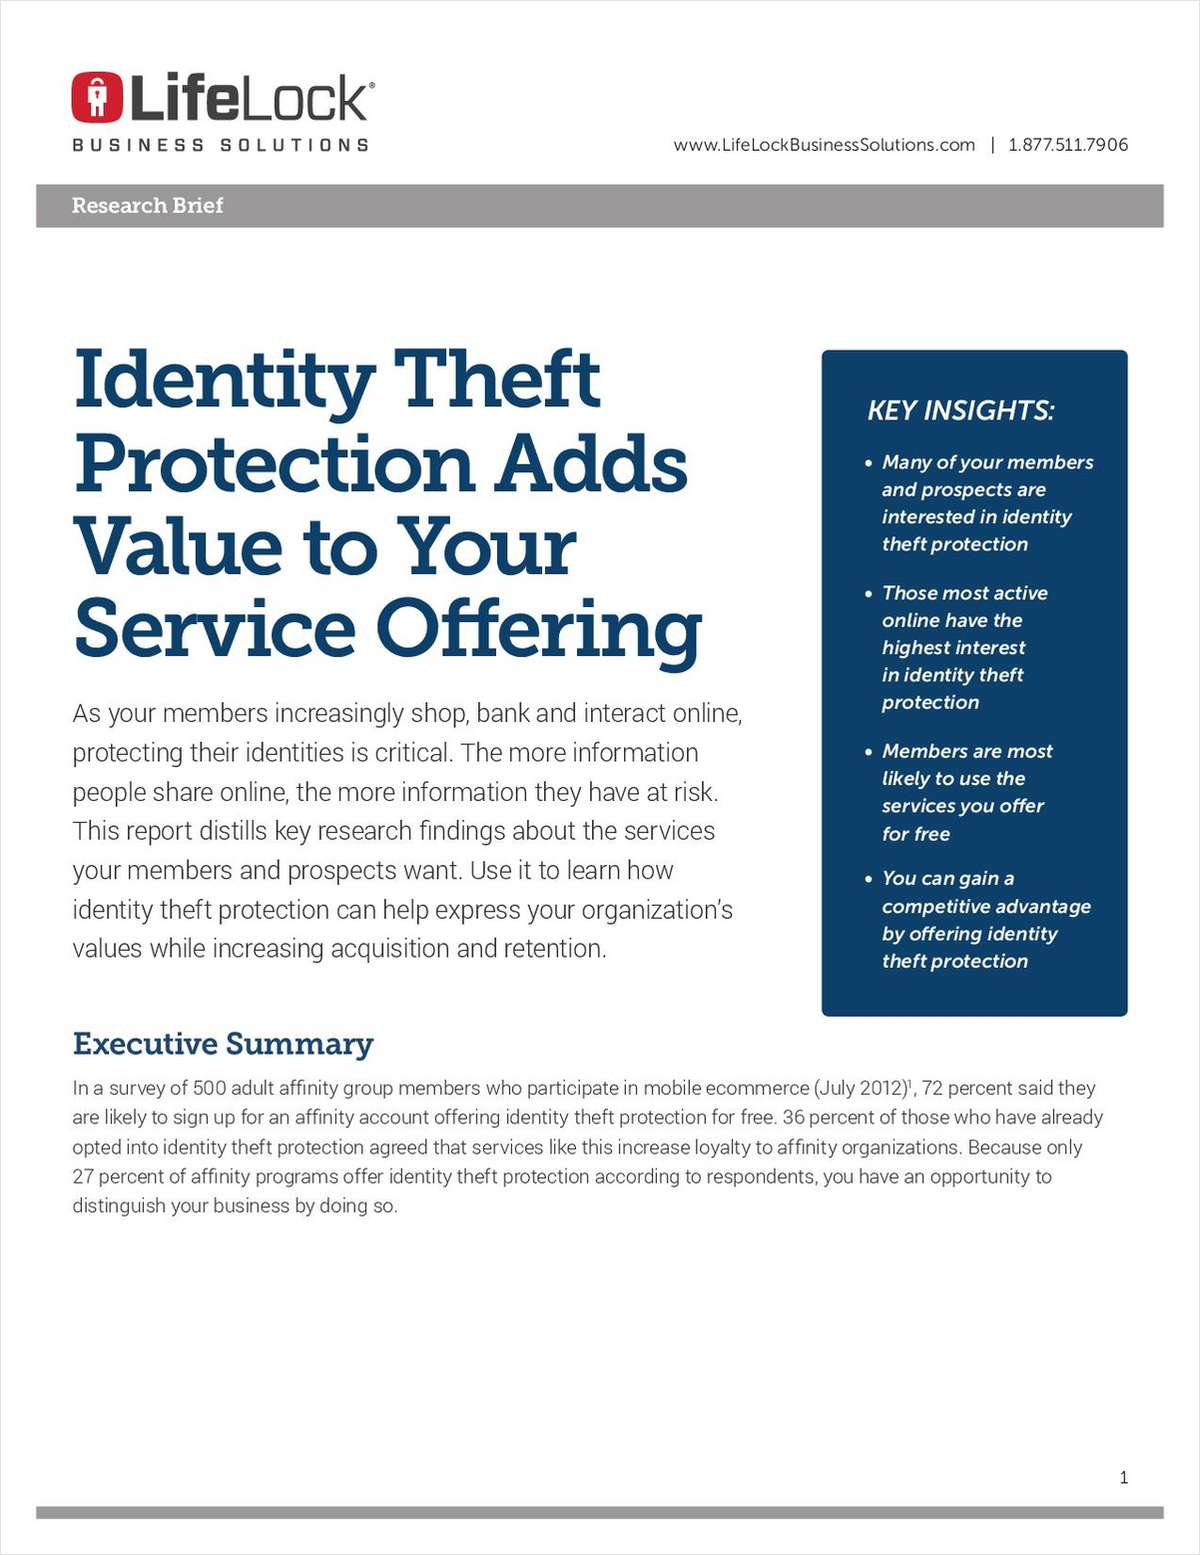 Identity Theft Protection Adds Value to Your Service Offering